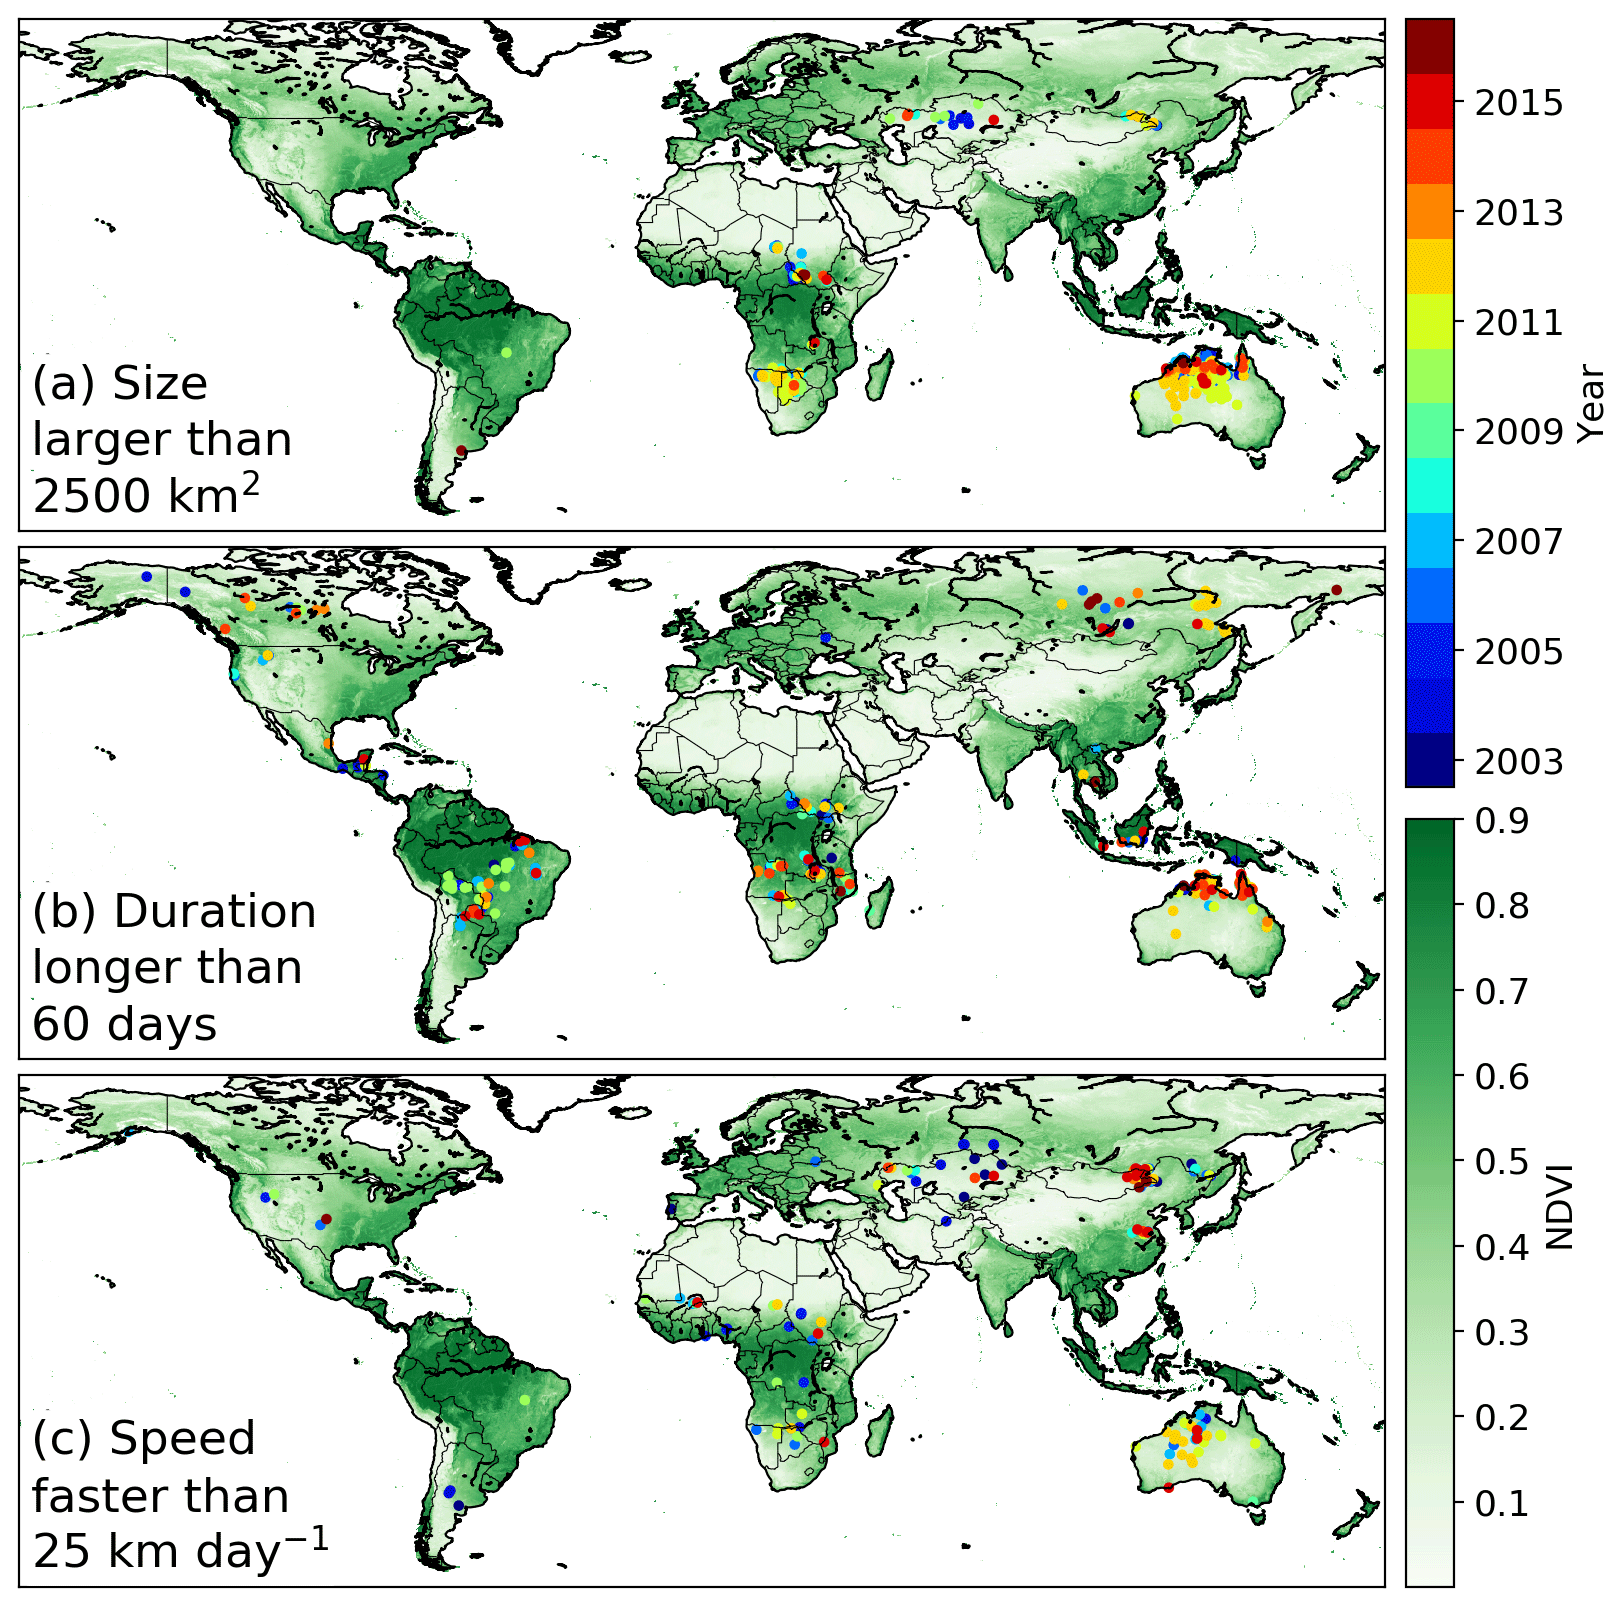 ESSD - The Global Fire Atlas of individual fire size, duration